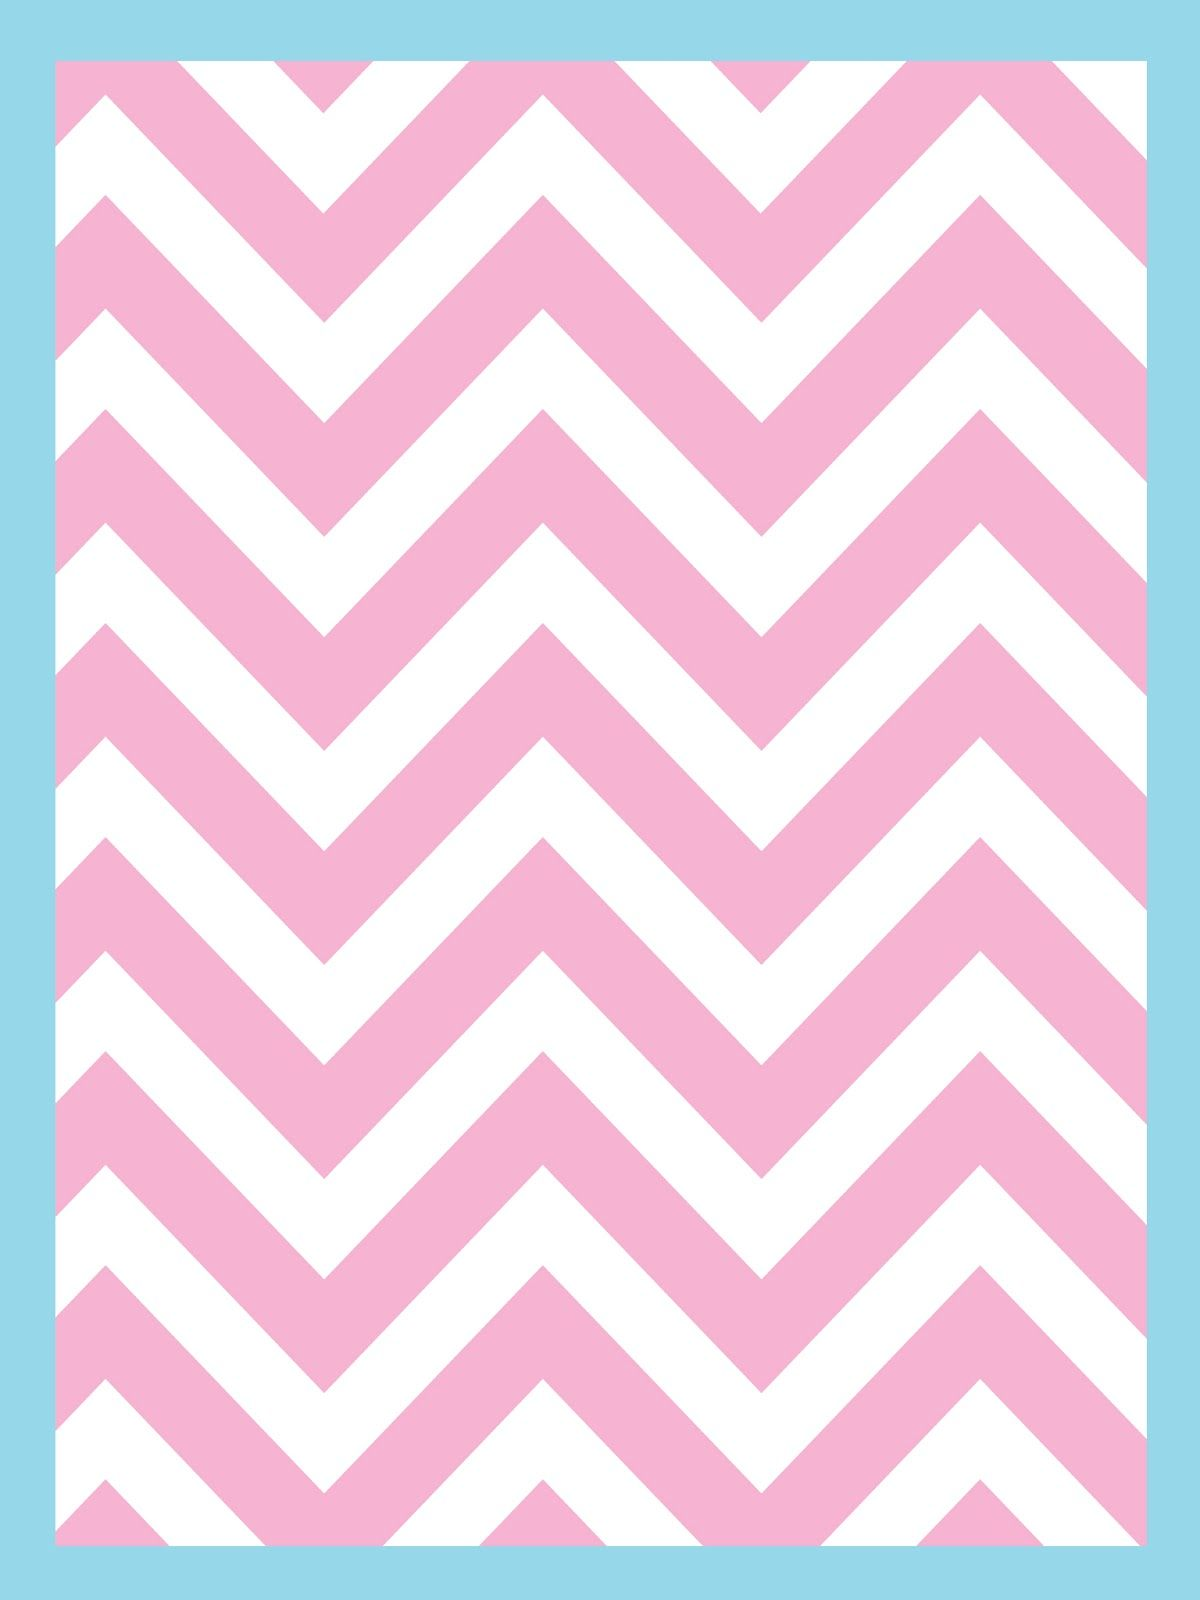 backgrounds for iPhones and iPads | Cute -n- Crafty | Pinterest ...